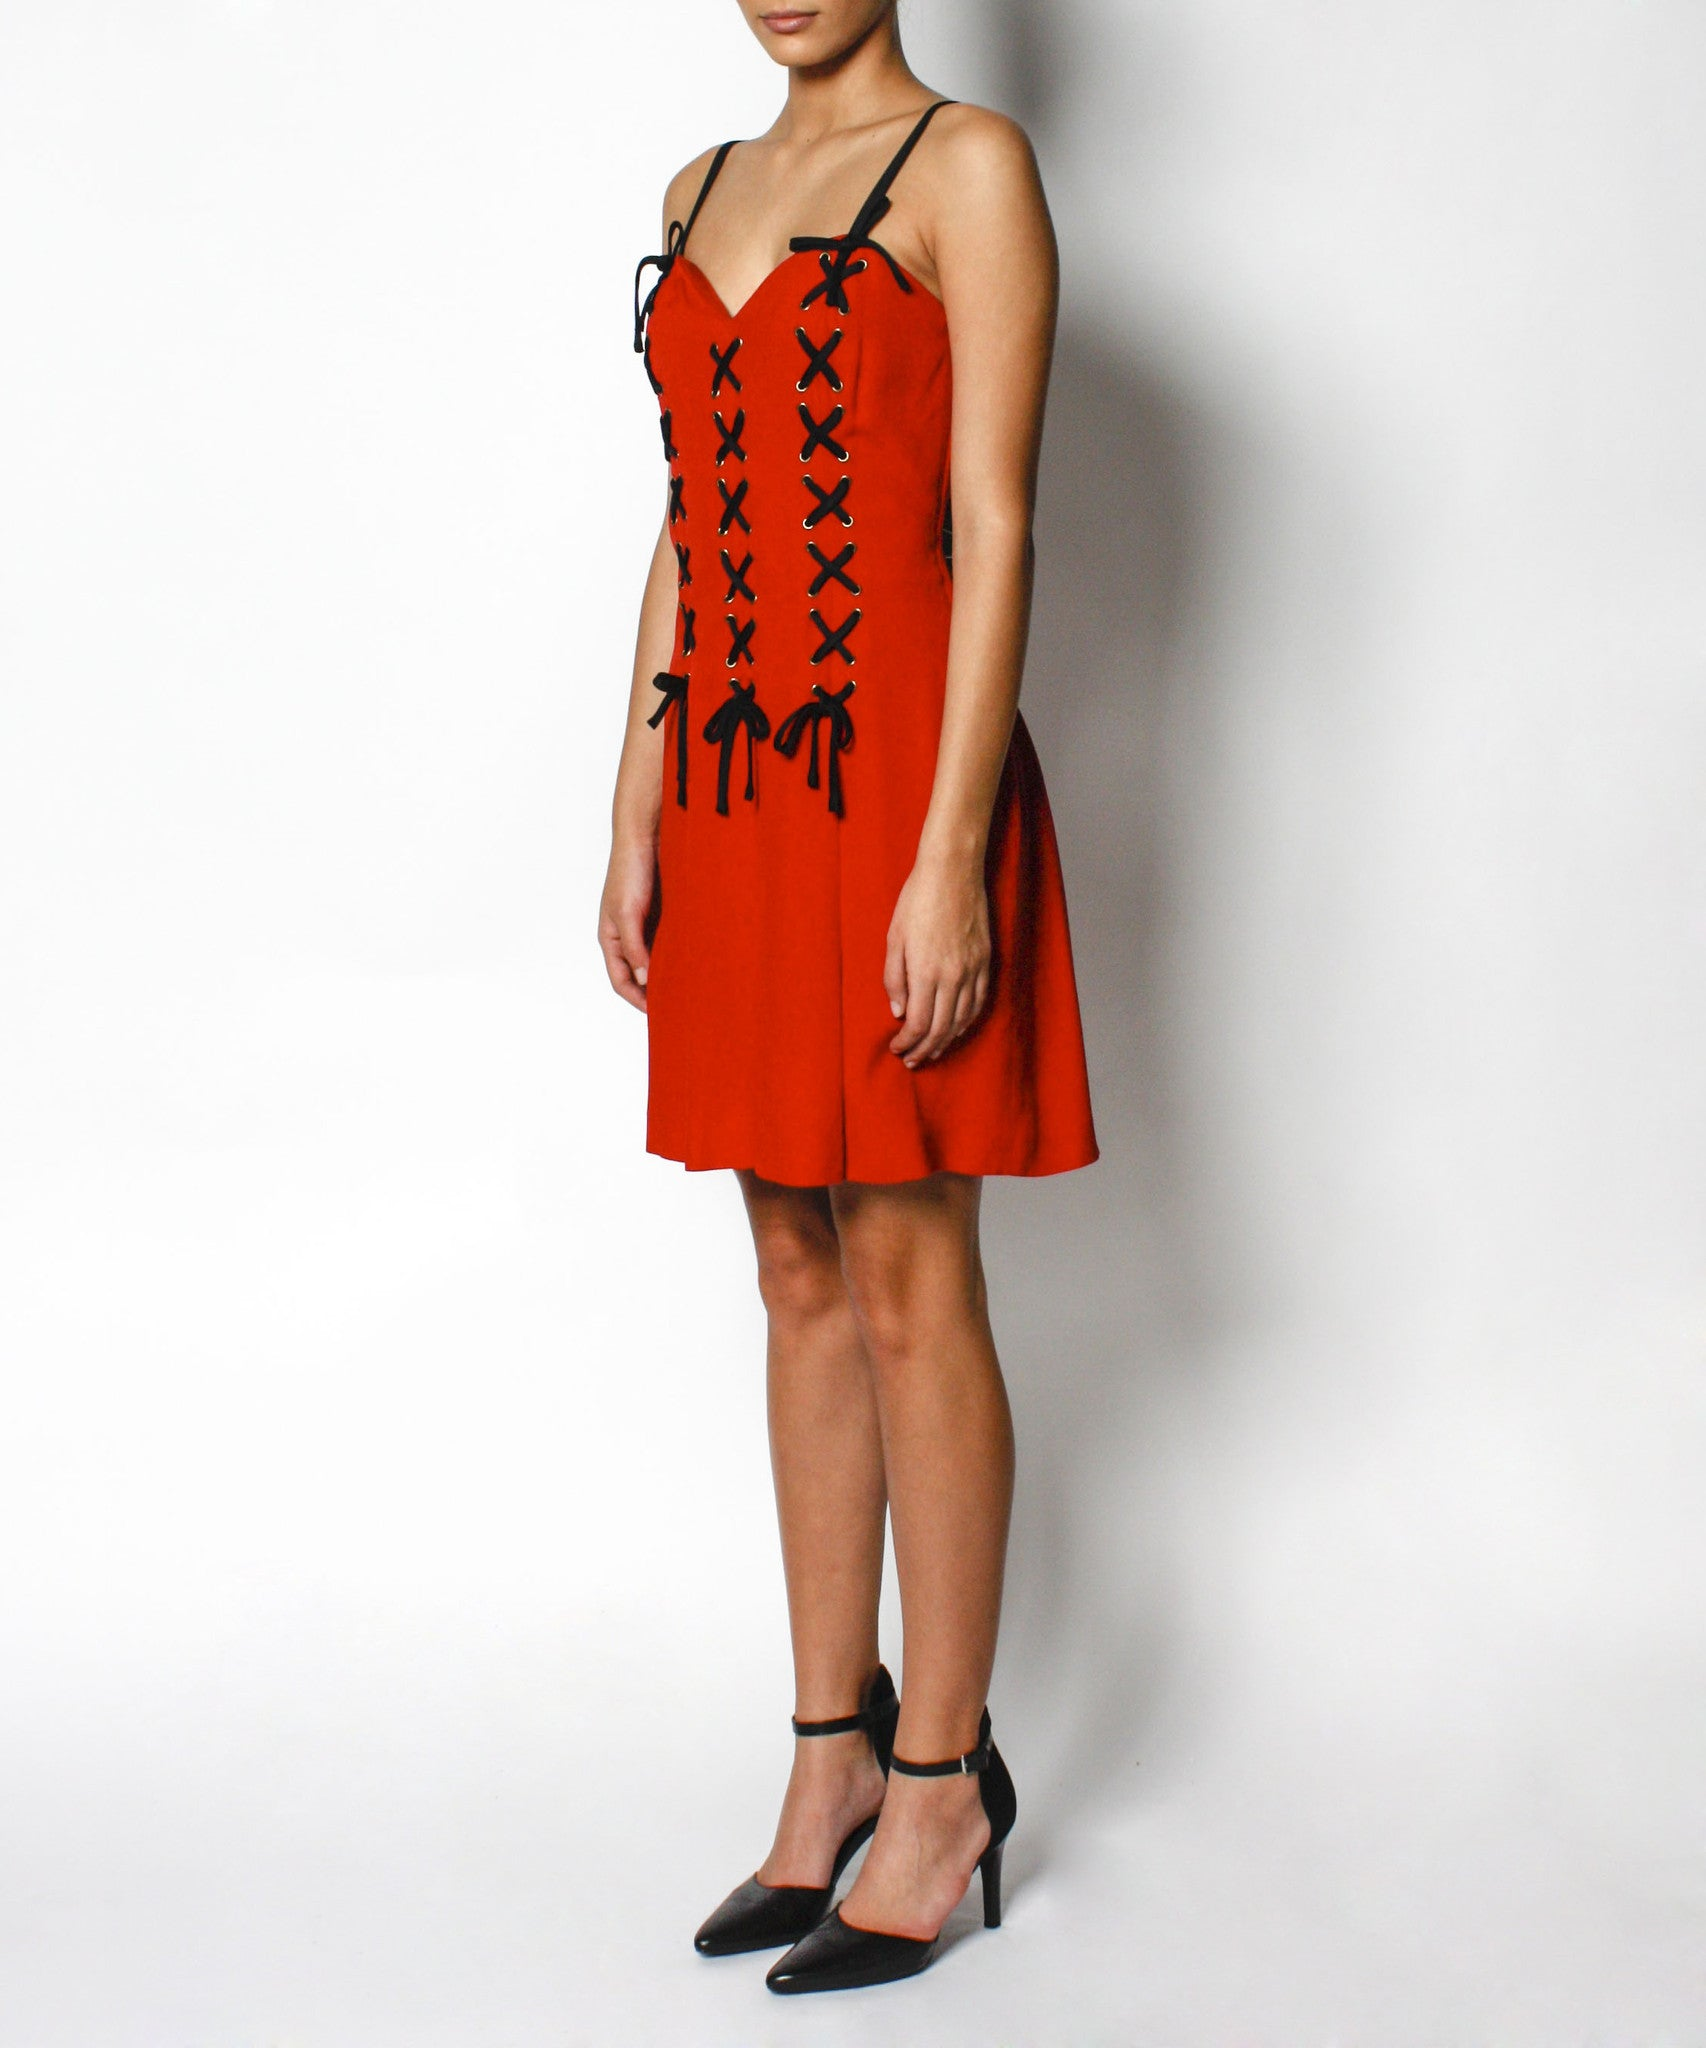 1990s Moschino Red Corset Dress with Black Lacing - C.Madeleine's